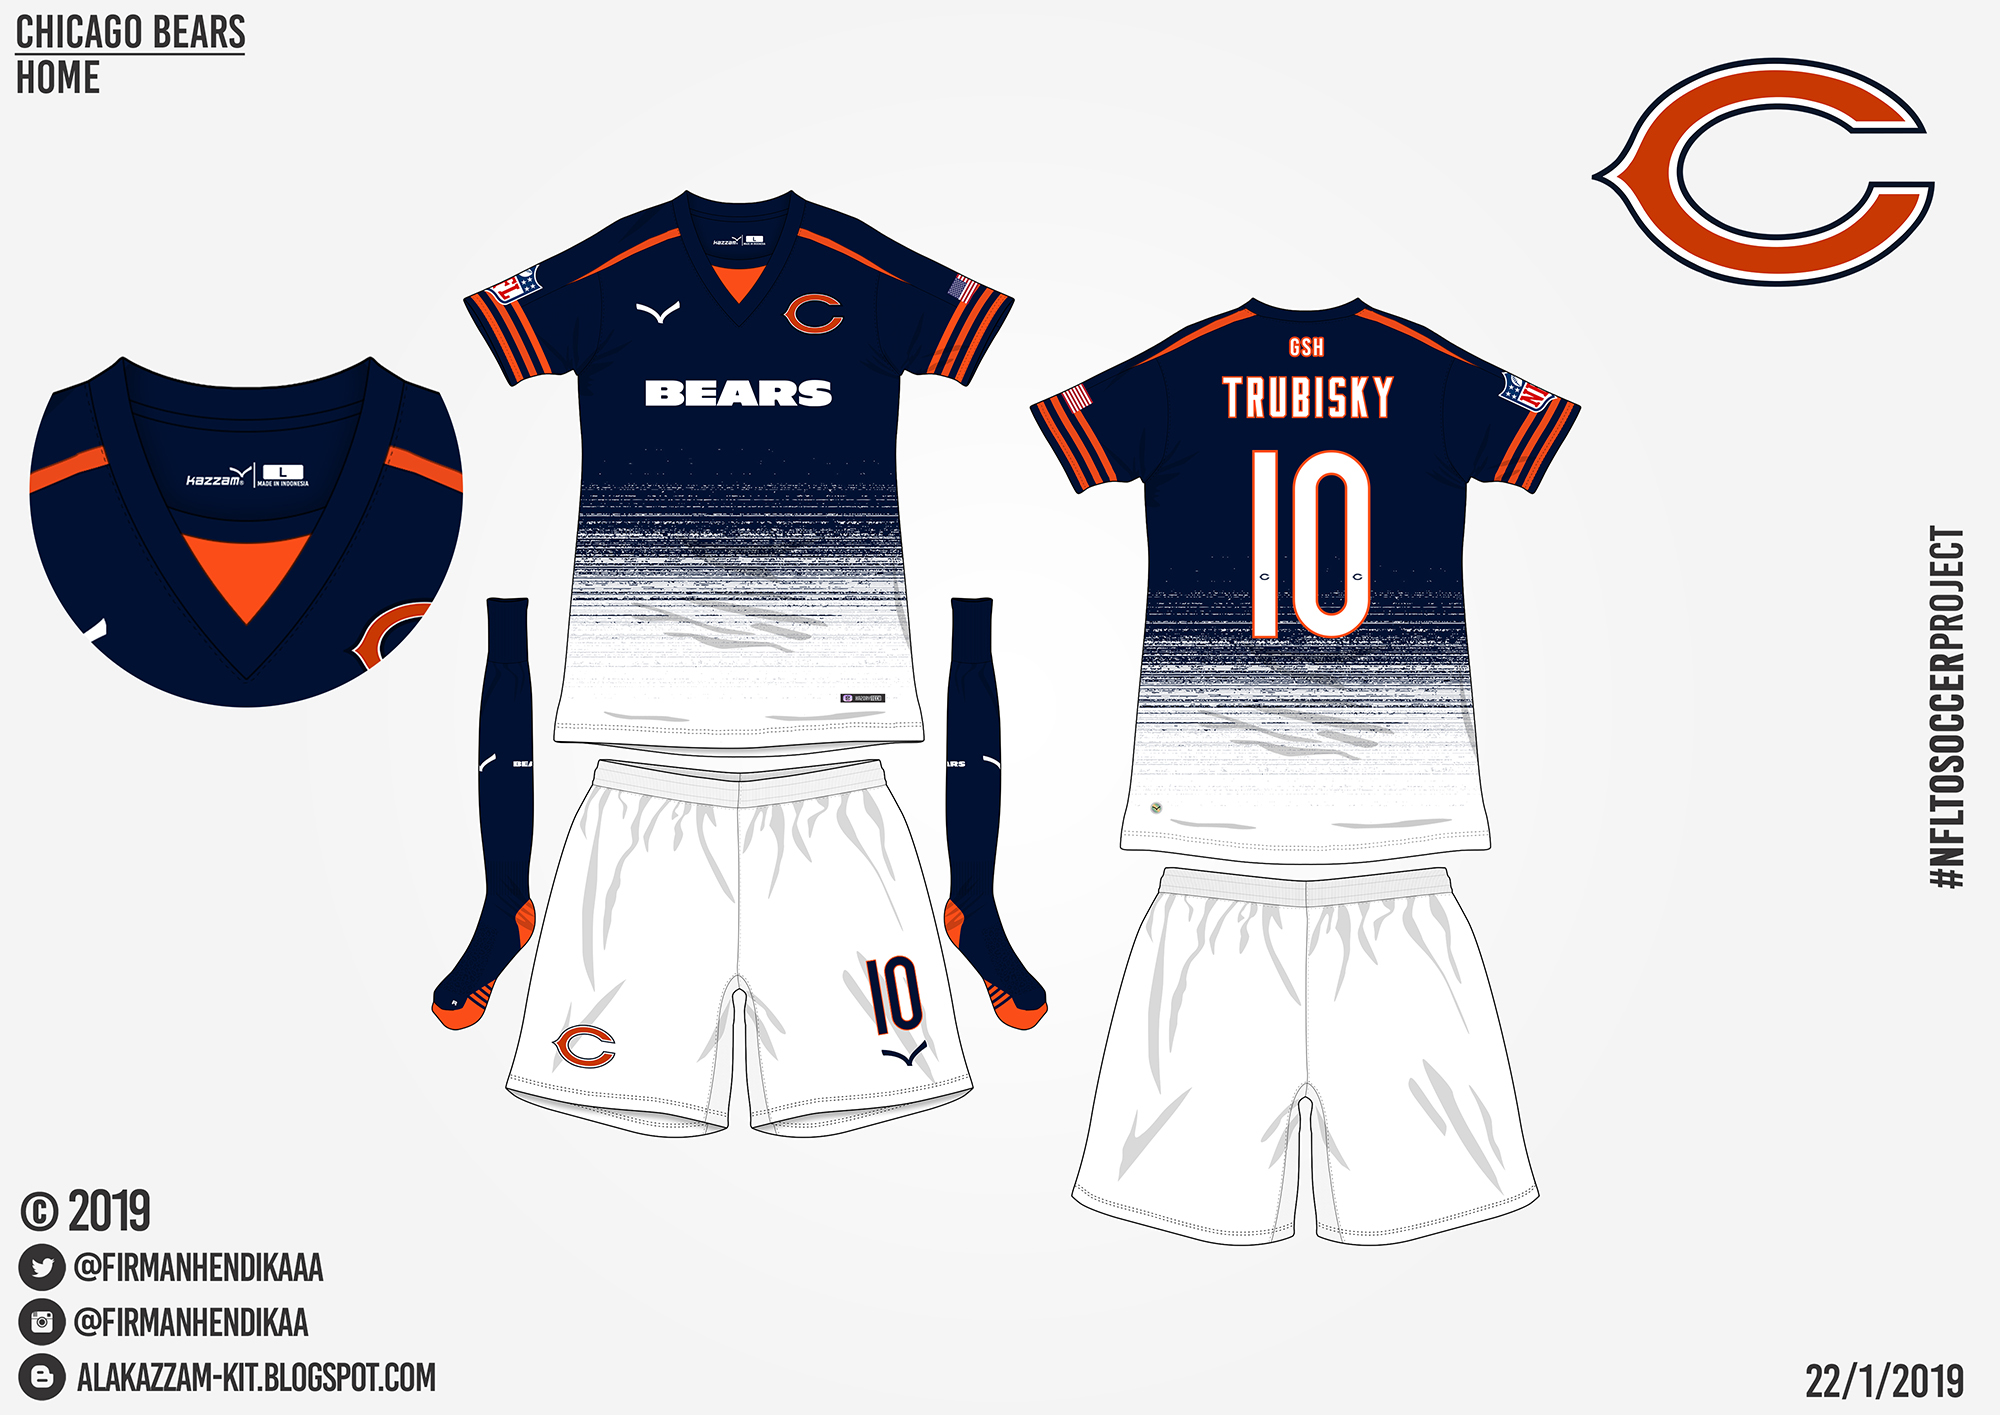 finest selection 6e950 9fe89 NFLtoSoccerProject - Chicago Bears (Home)